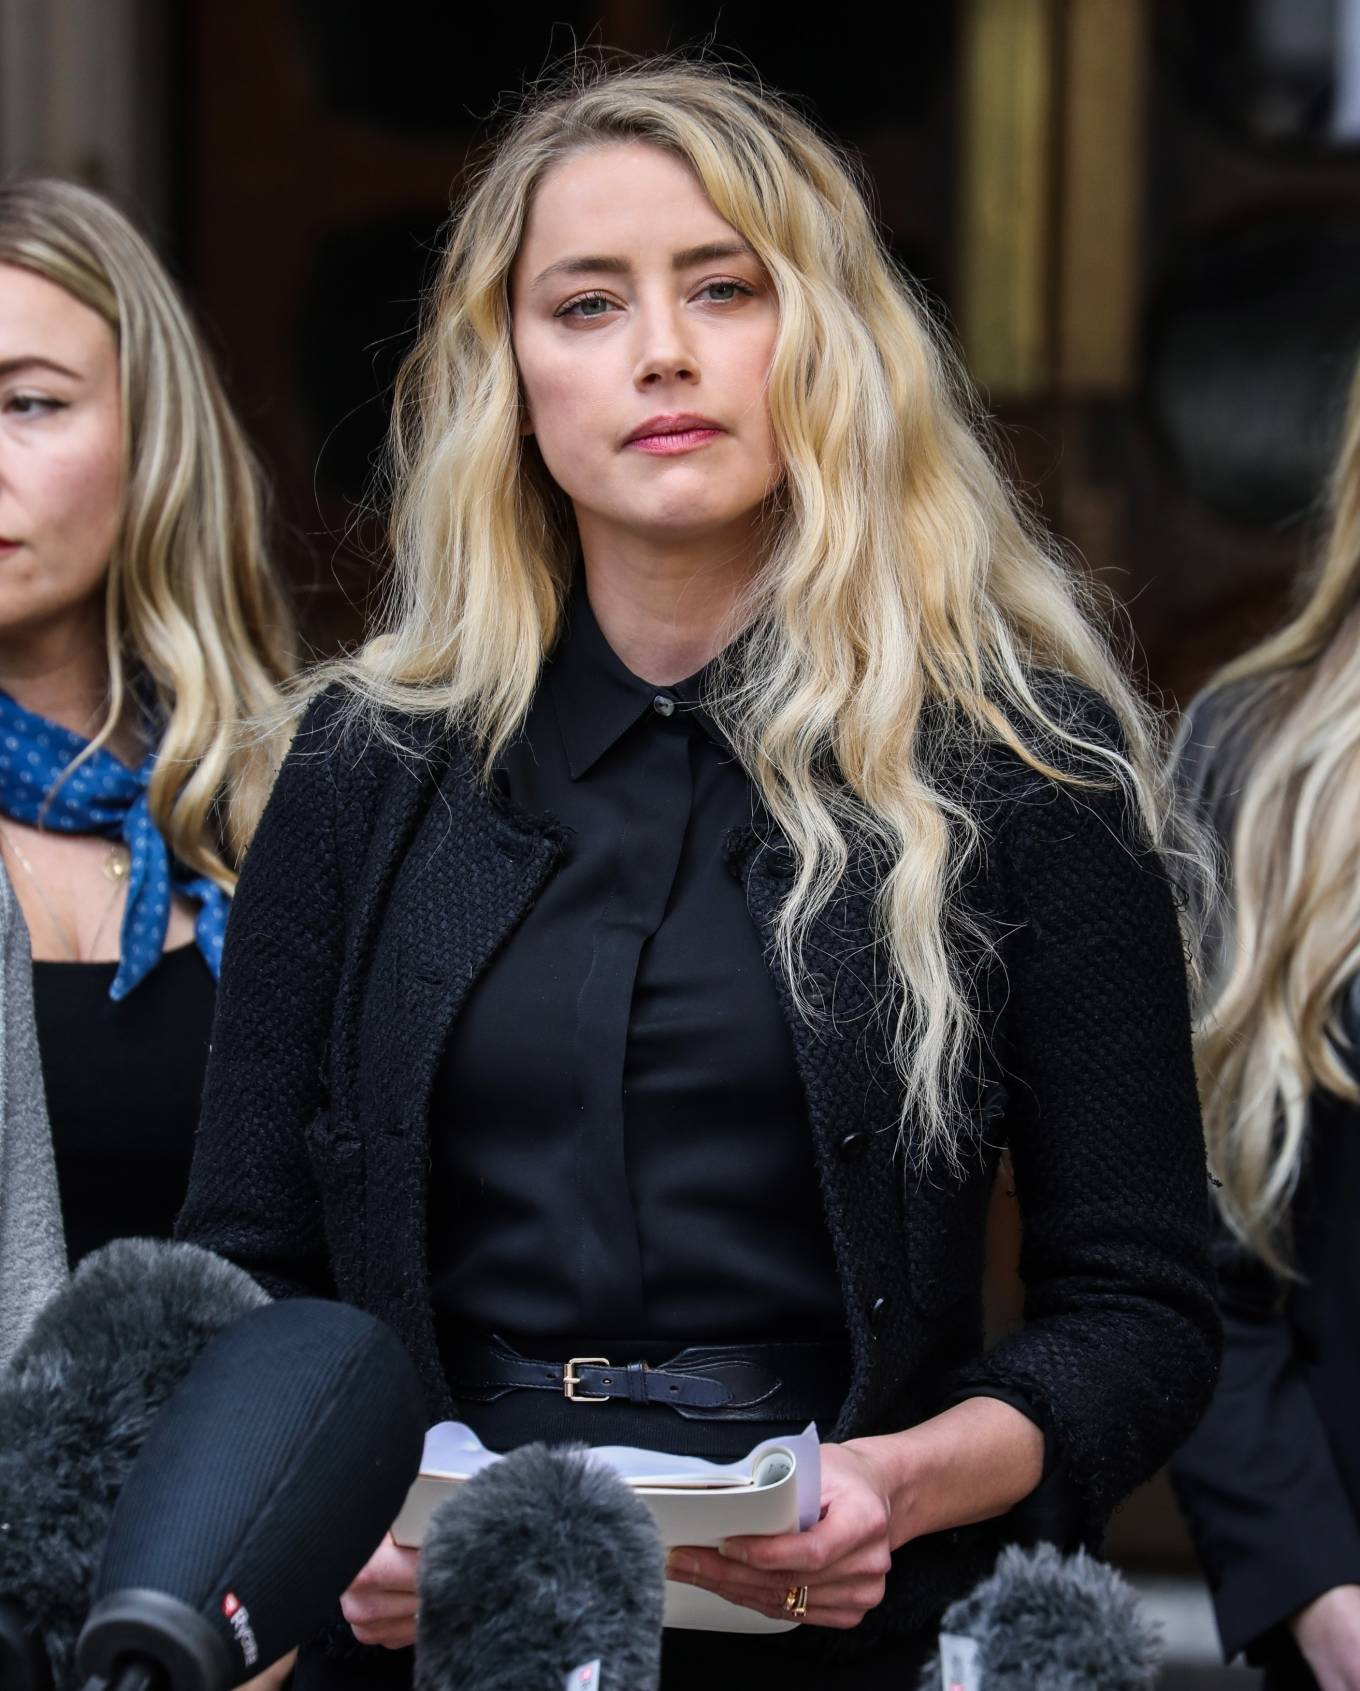 Amber Heard - Pictured while giving A Statement Outside The Royal Courts Of Justice